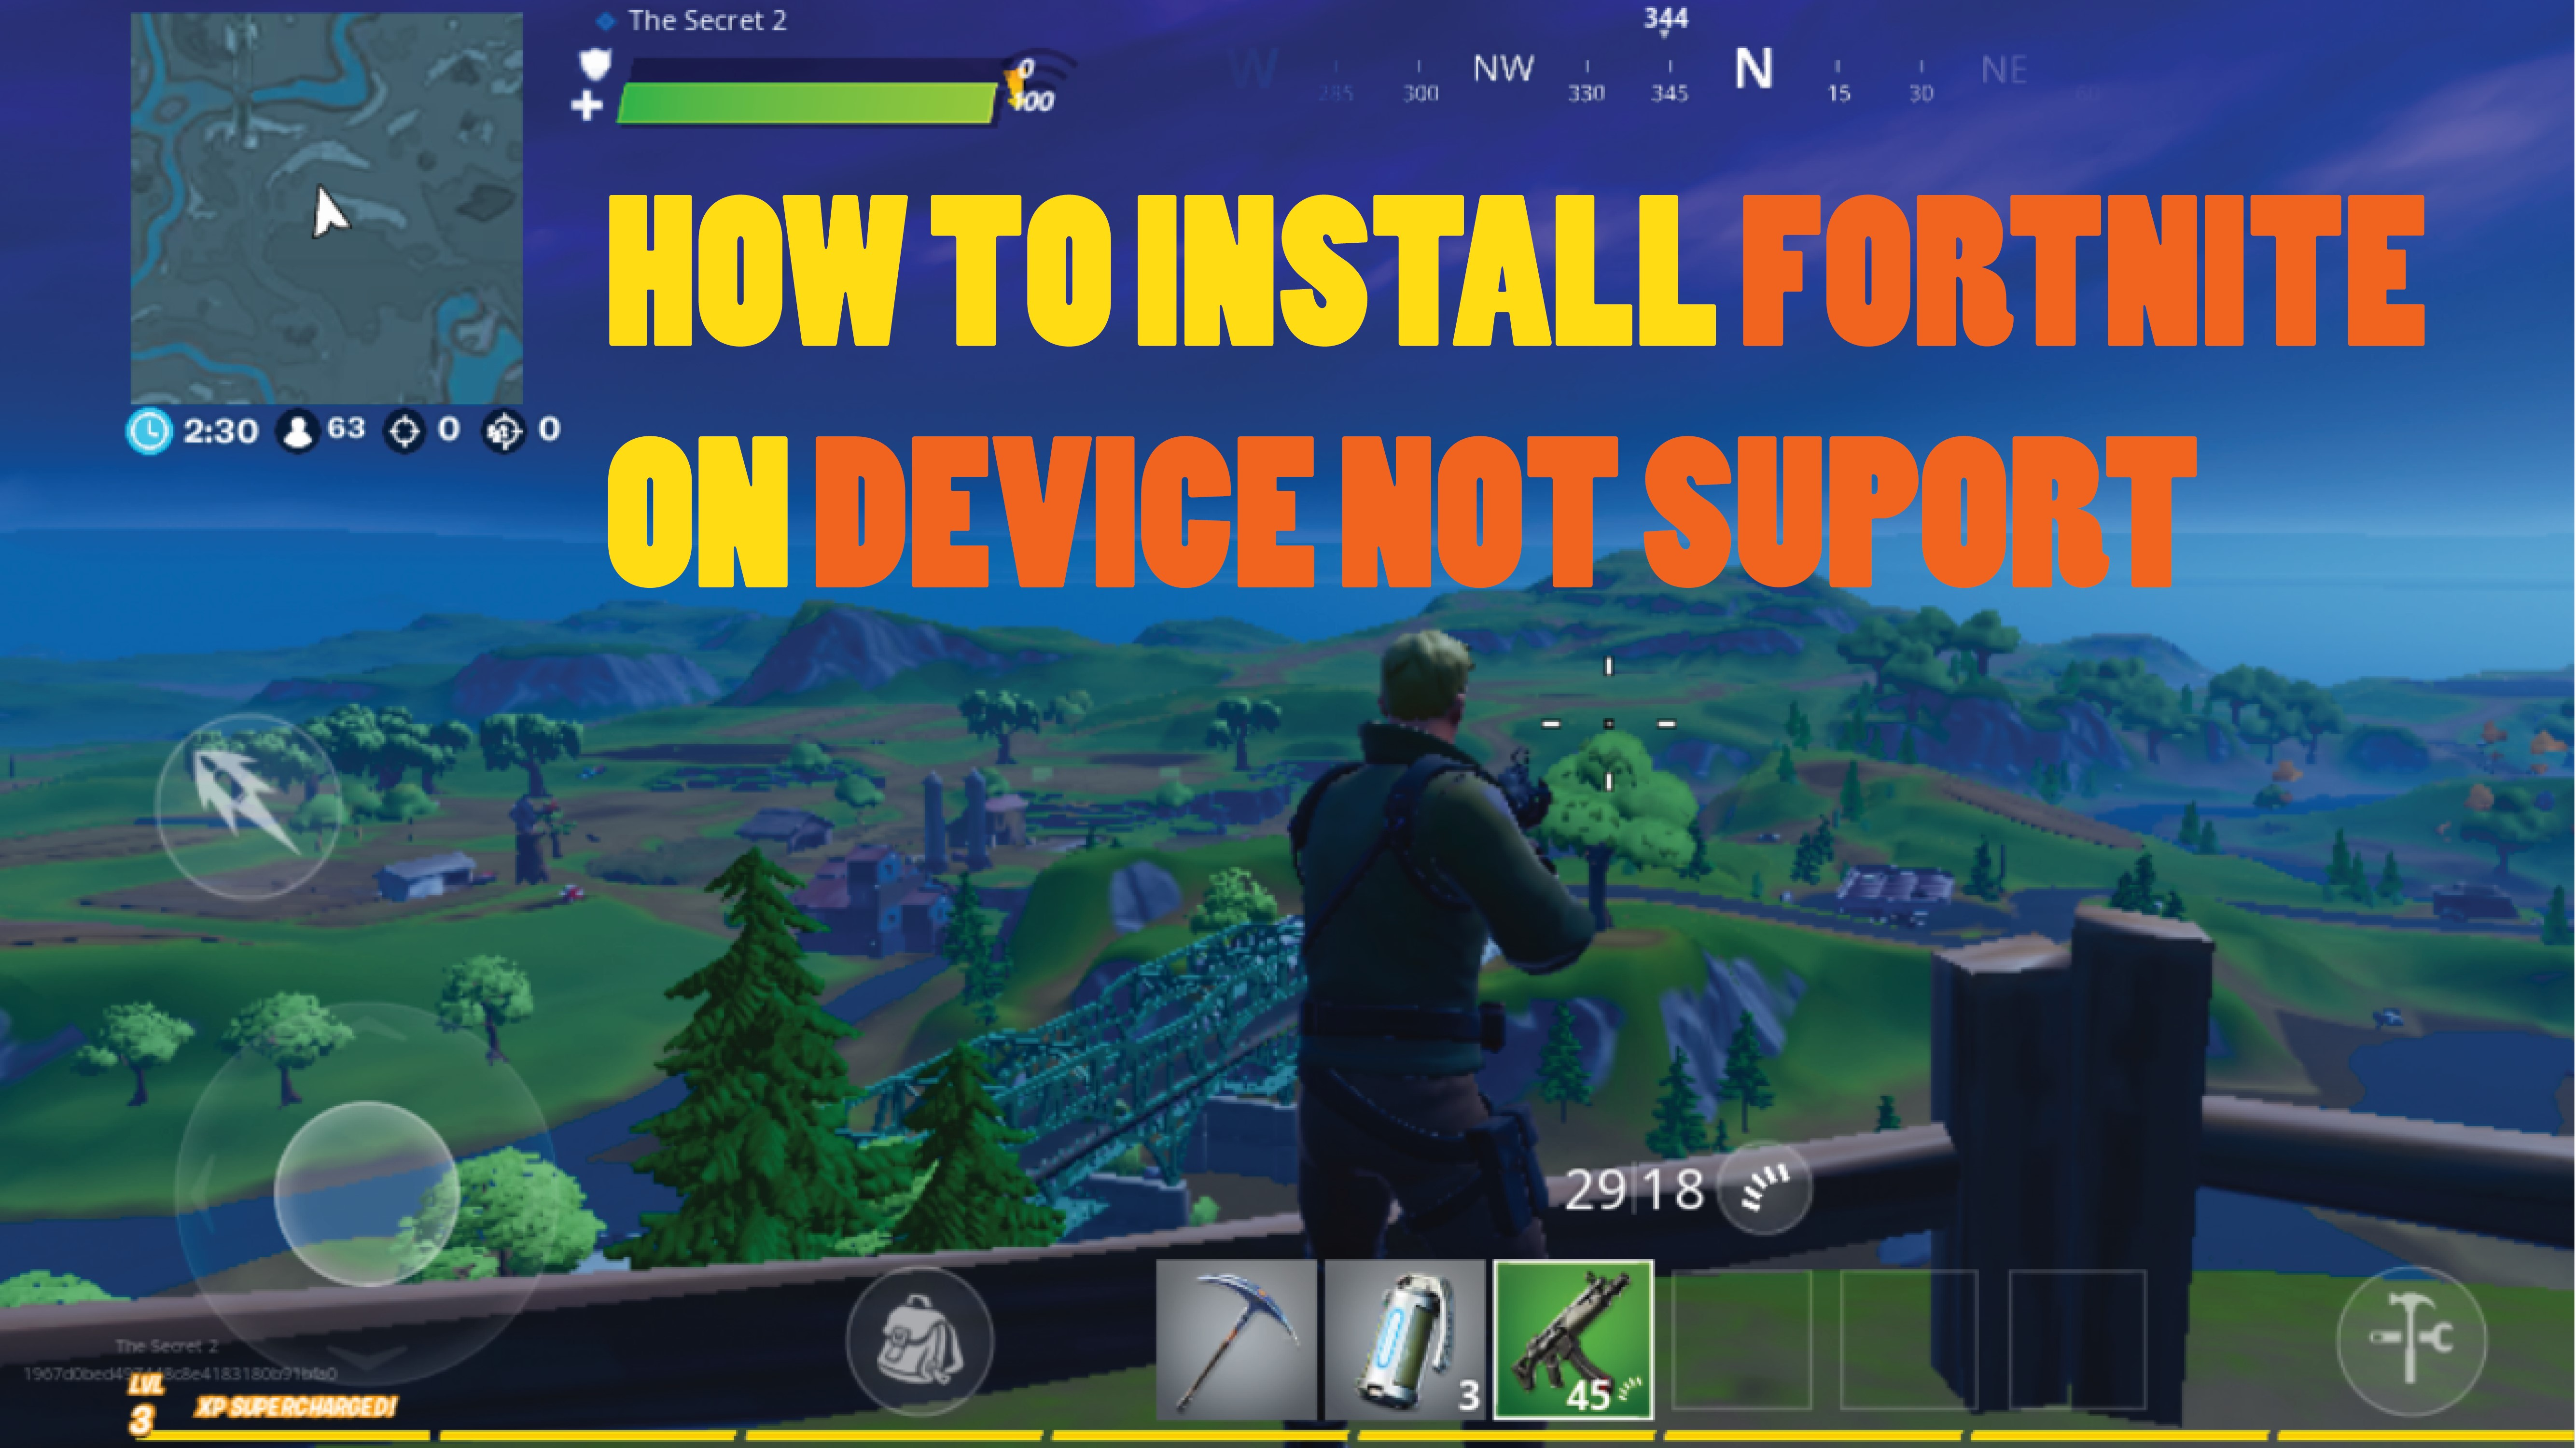 How To Install Fortnite On Incompatible Devices How To Install Fortnite On Android Device Not Suport Gsm Full Info